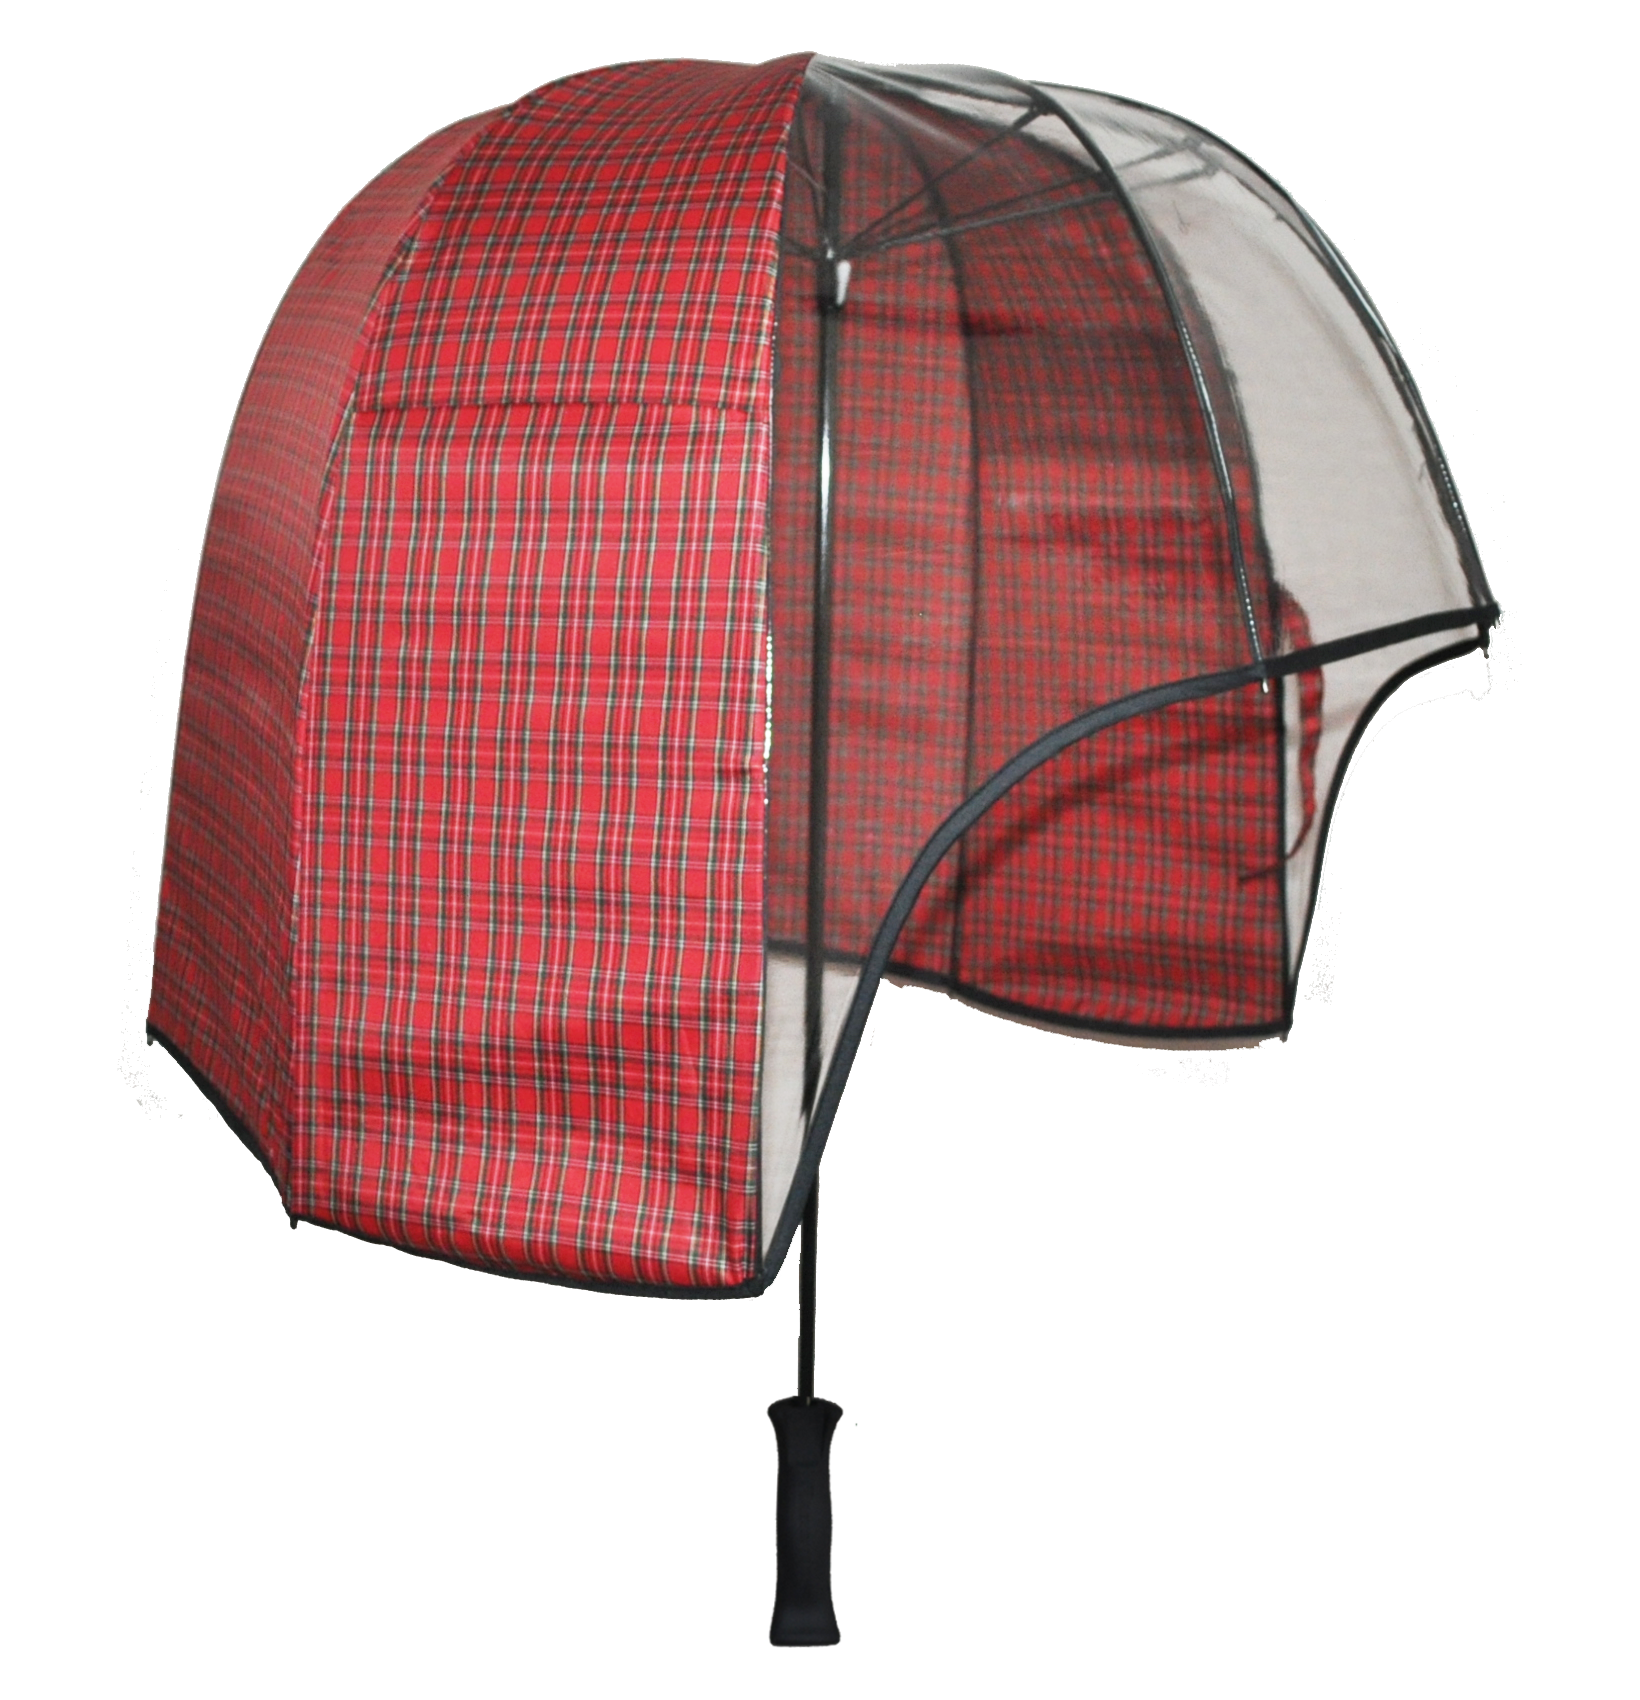 Tent transparent clear dome. Panoramic windproof umbrella red